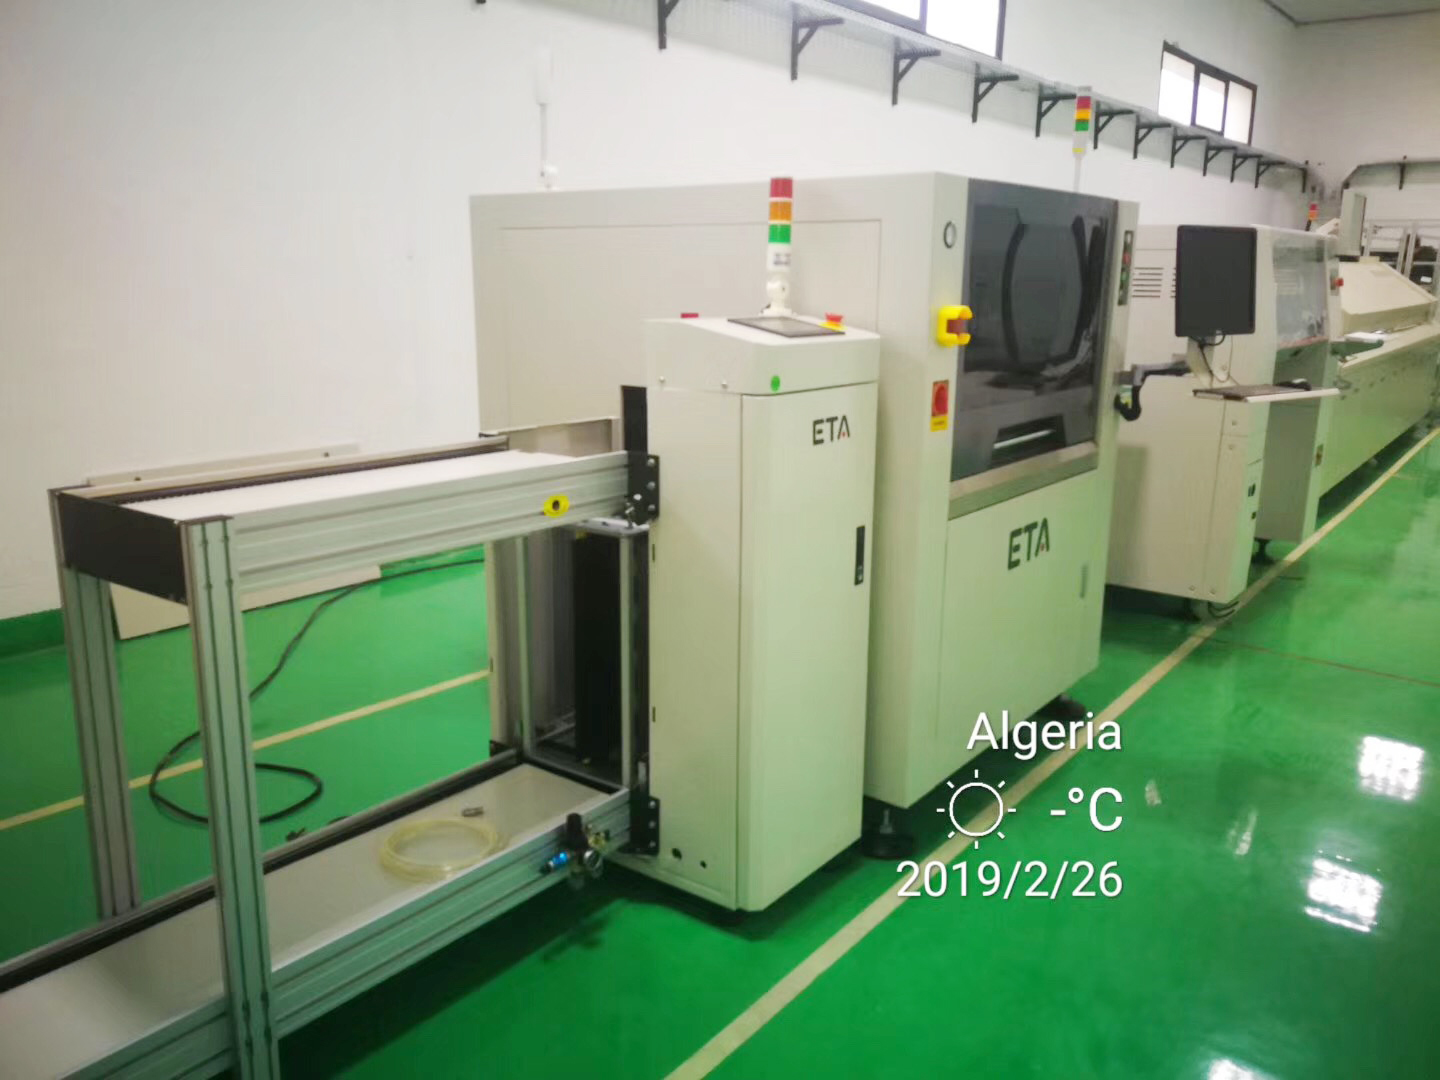 Chin Supplier ETA Customized Reflow Oven 10 Zones for Washing Machine Motor 5